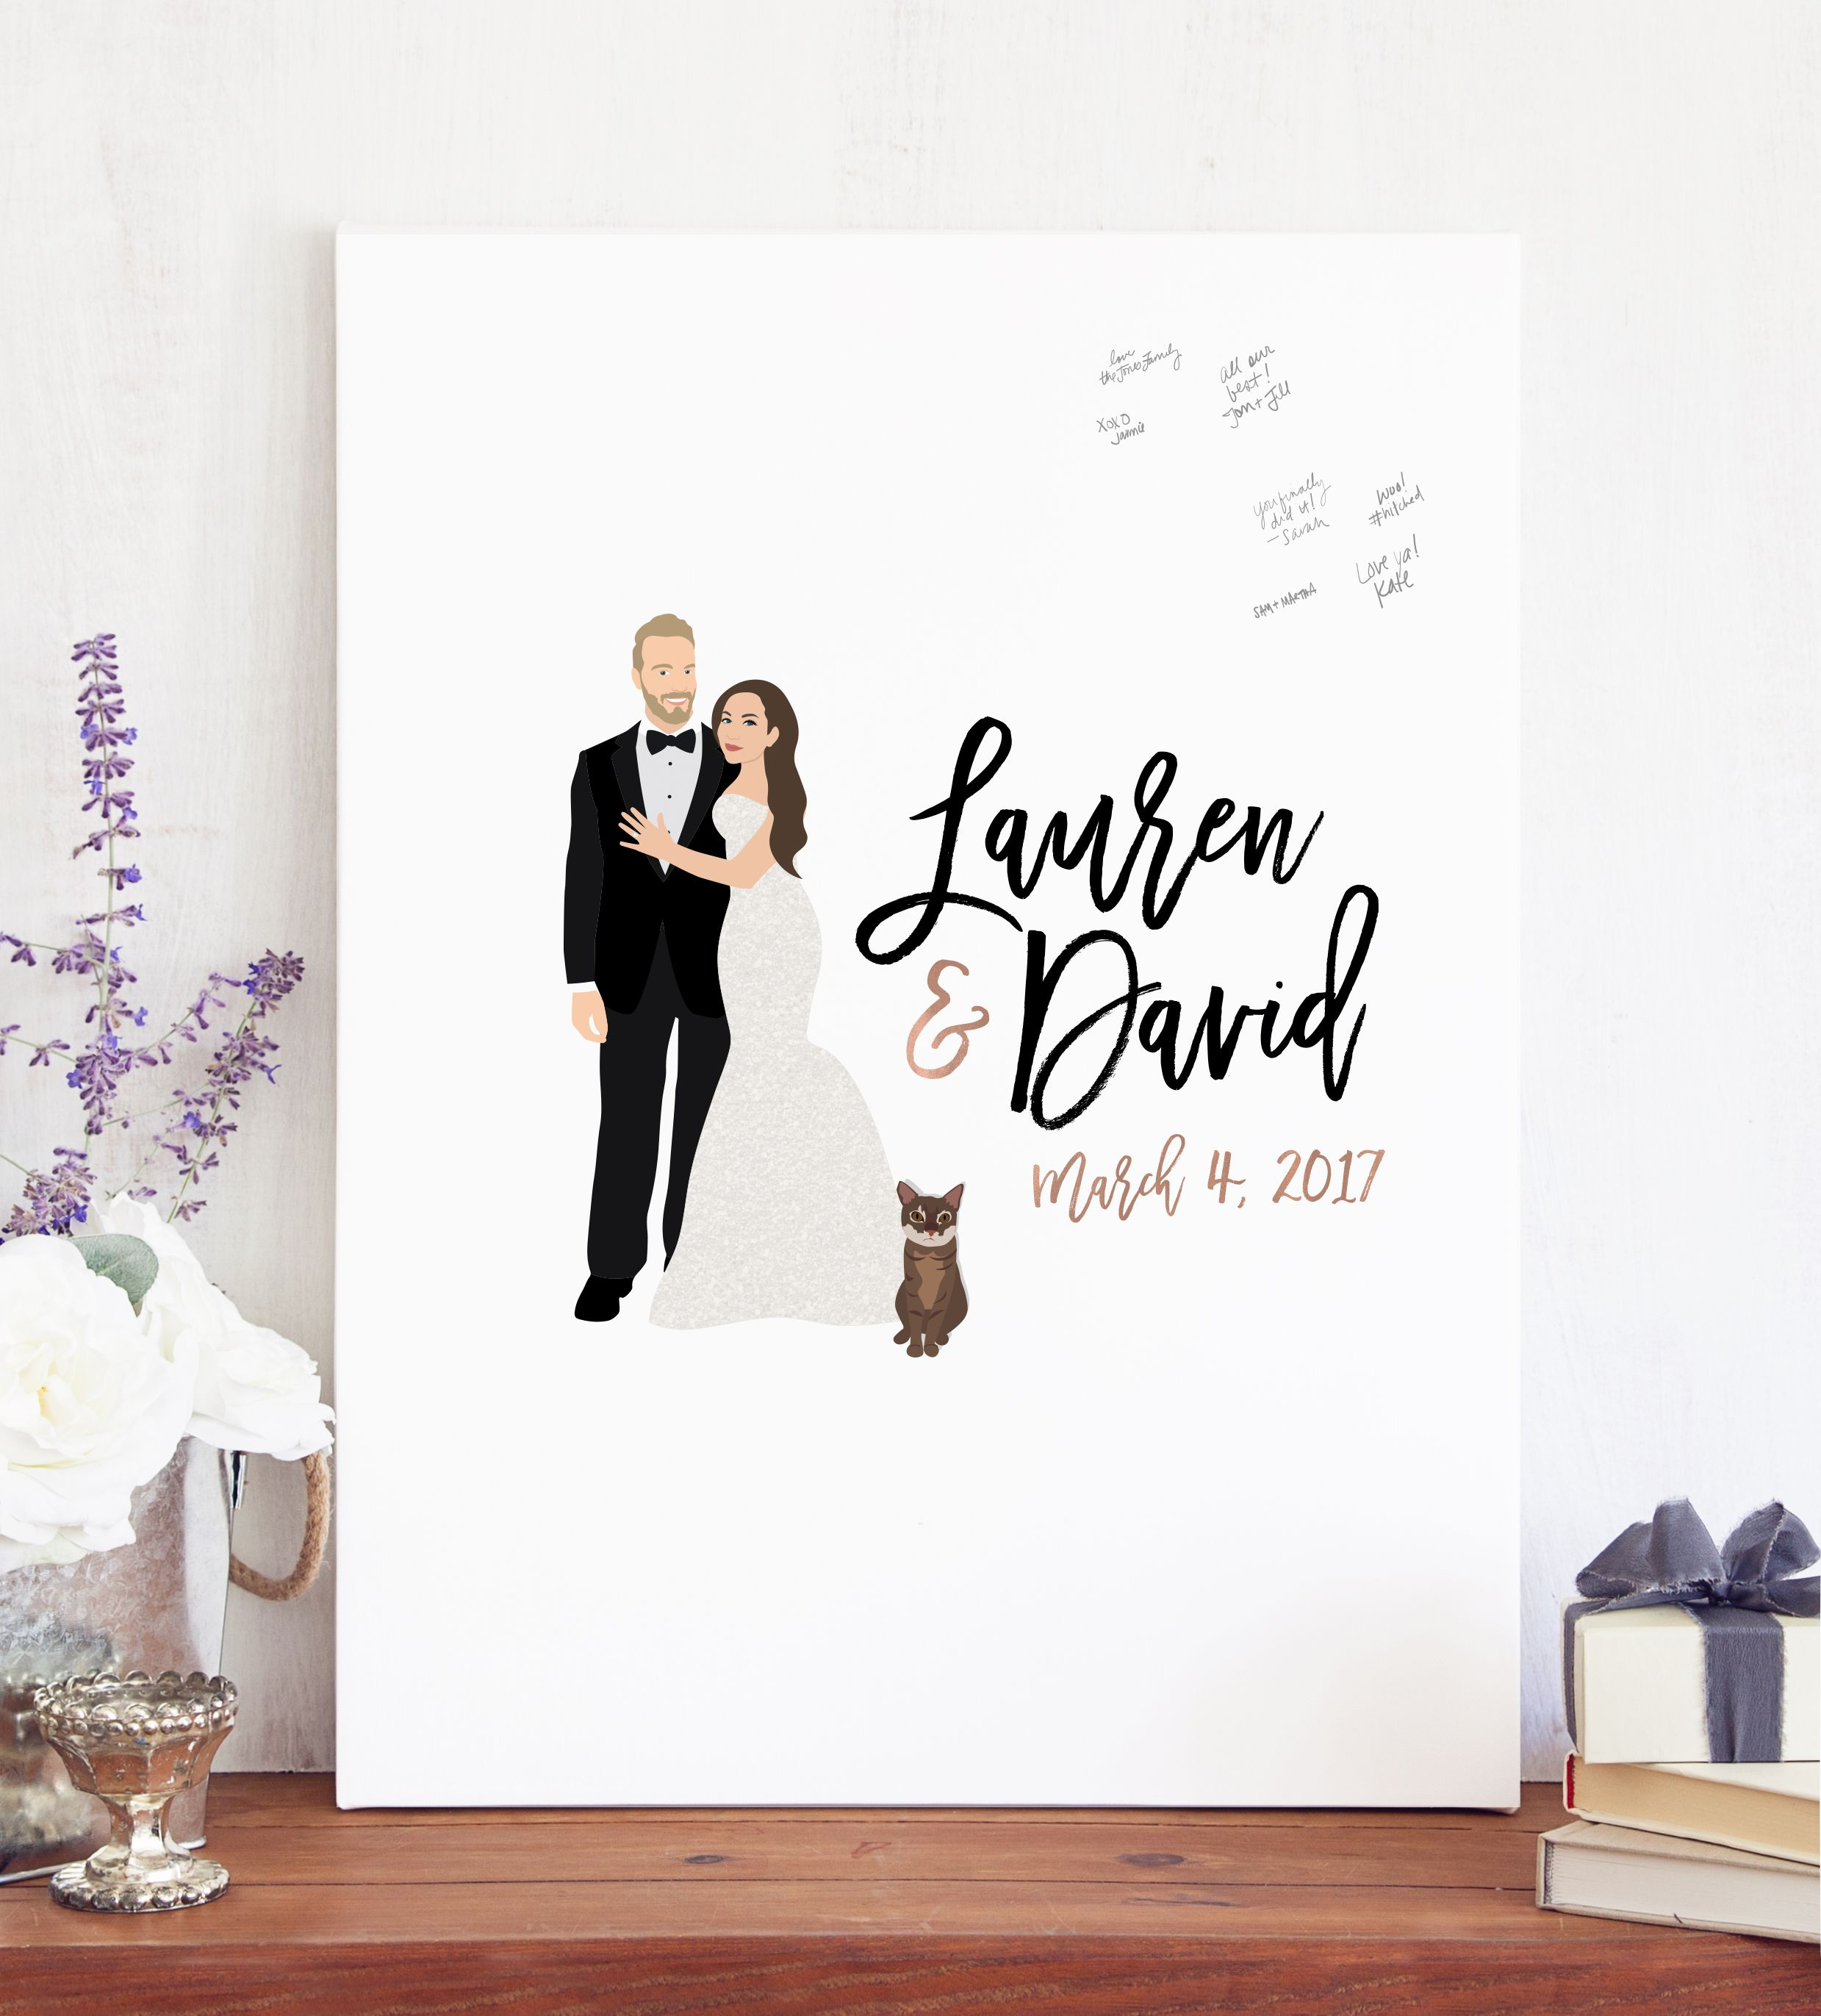 Wedding Portrait Guest Book Alternative Print With Couple Illustration As An To The Traditional